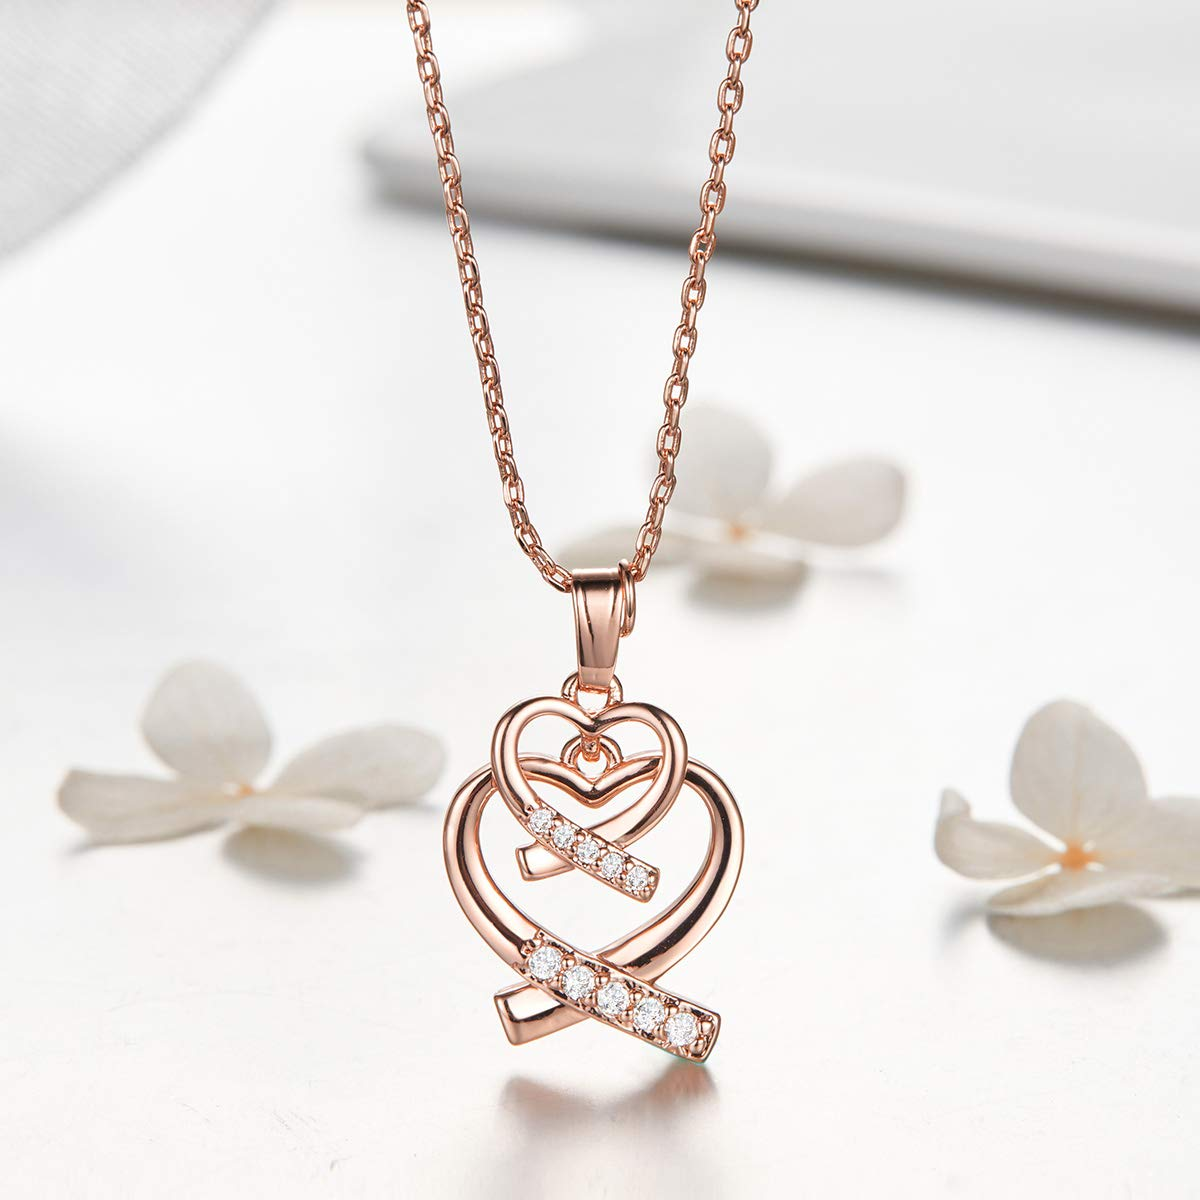 WOSTU 14K Rose Gold Plated Cubic Zirconia Pandant Necklace Love Heart to Heart Double Heart Necklace for Women